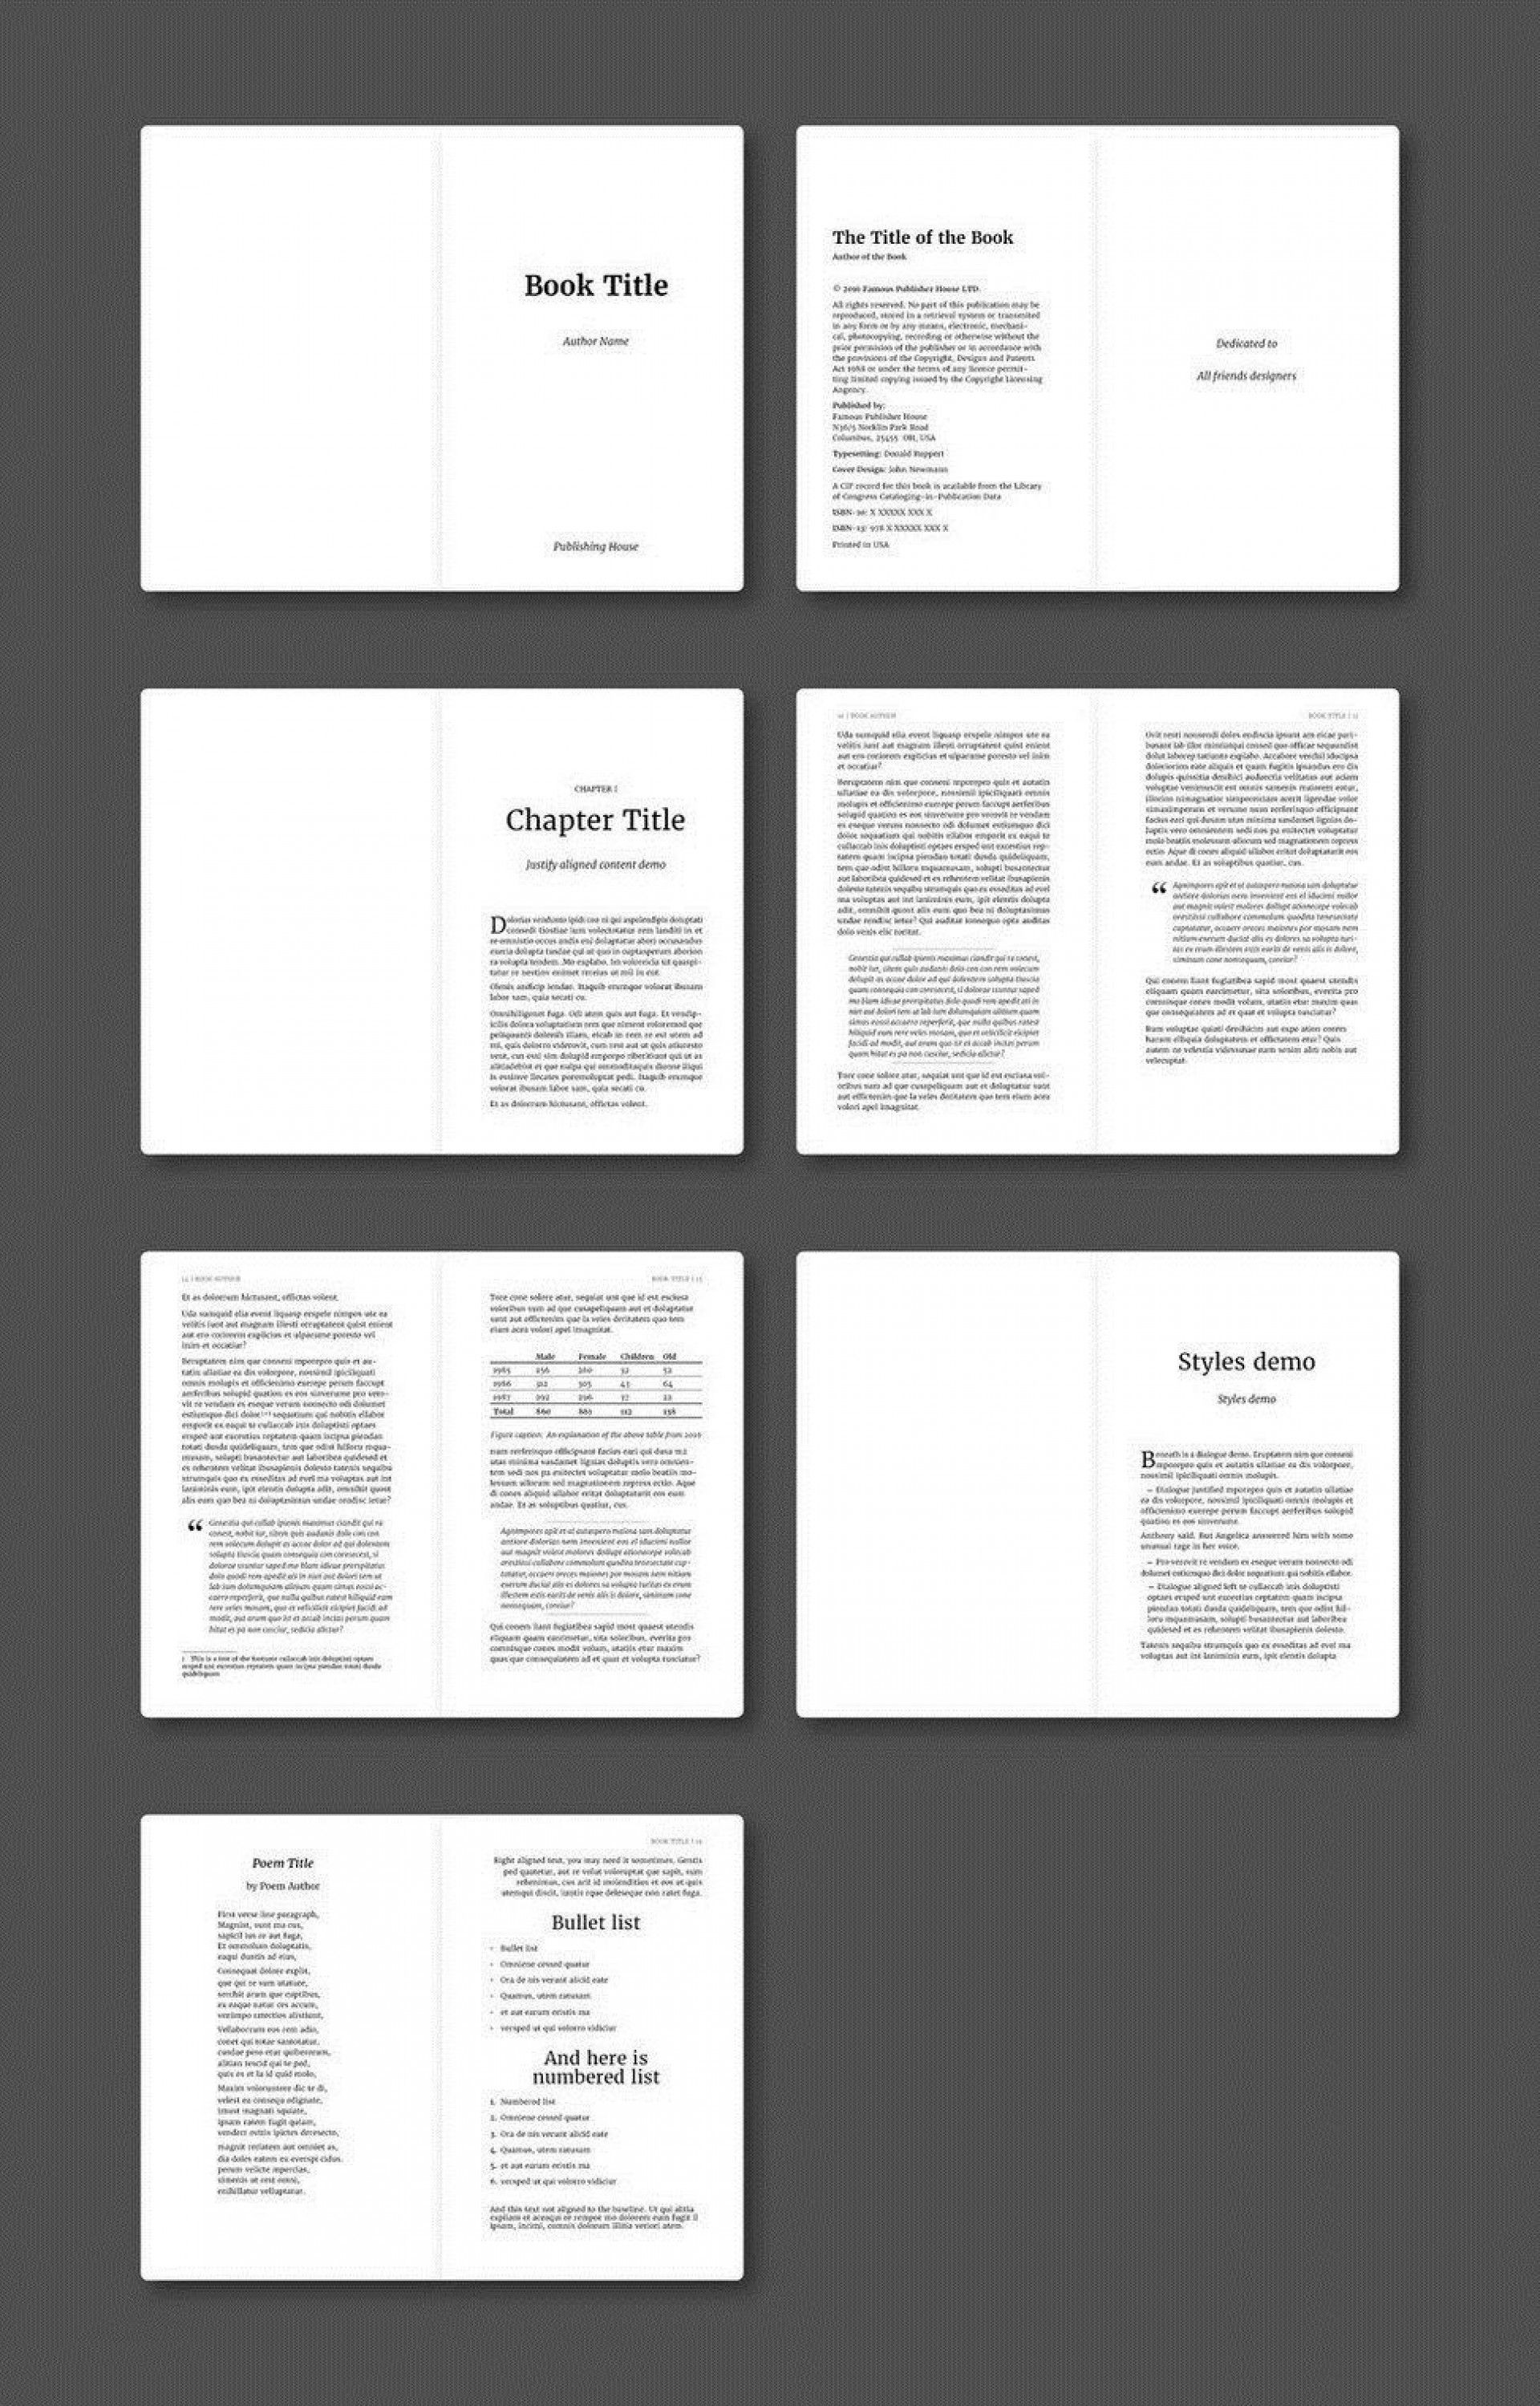 002 Fearsome Free Indesign Book Template Download High Definition  Cs6 Adobe1920